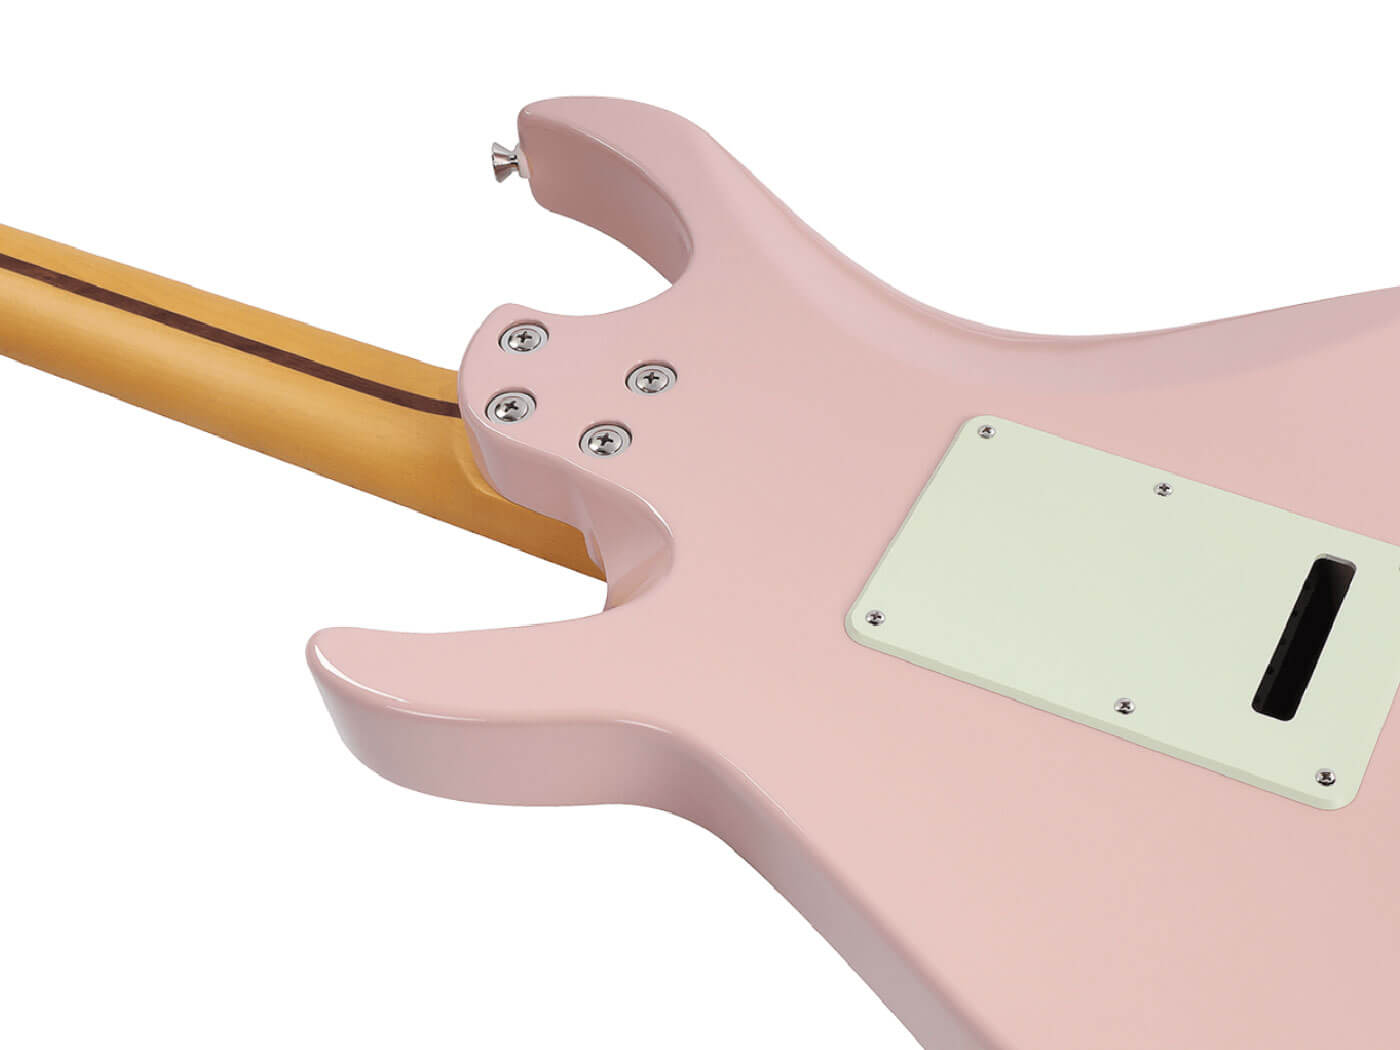 Vola's new guitars' neck join